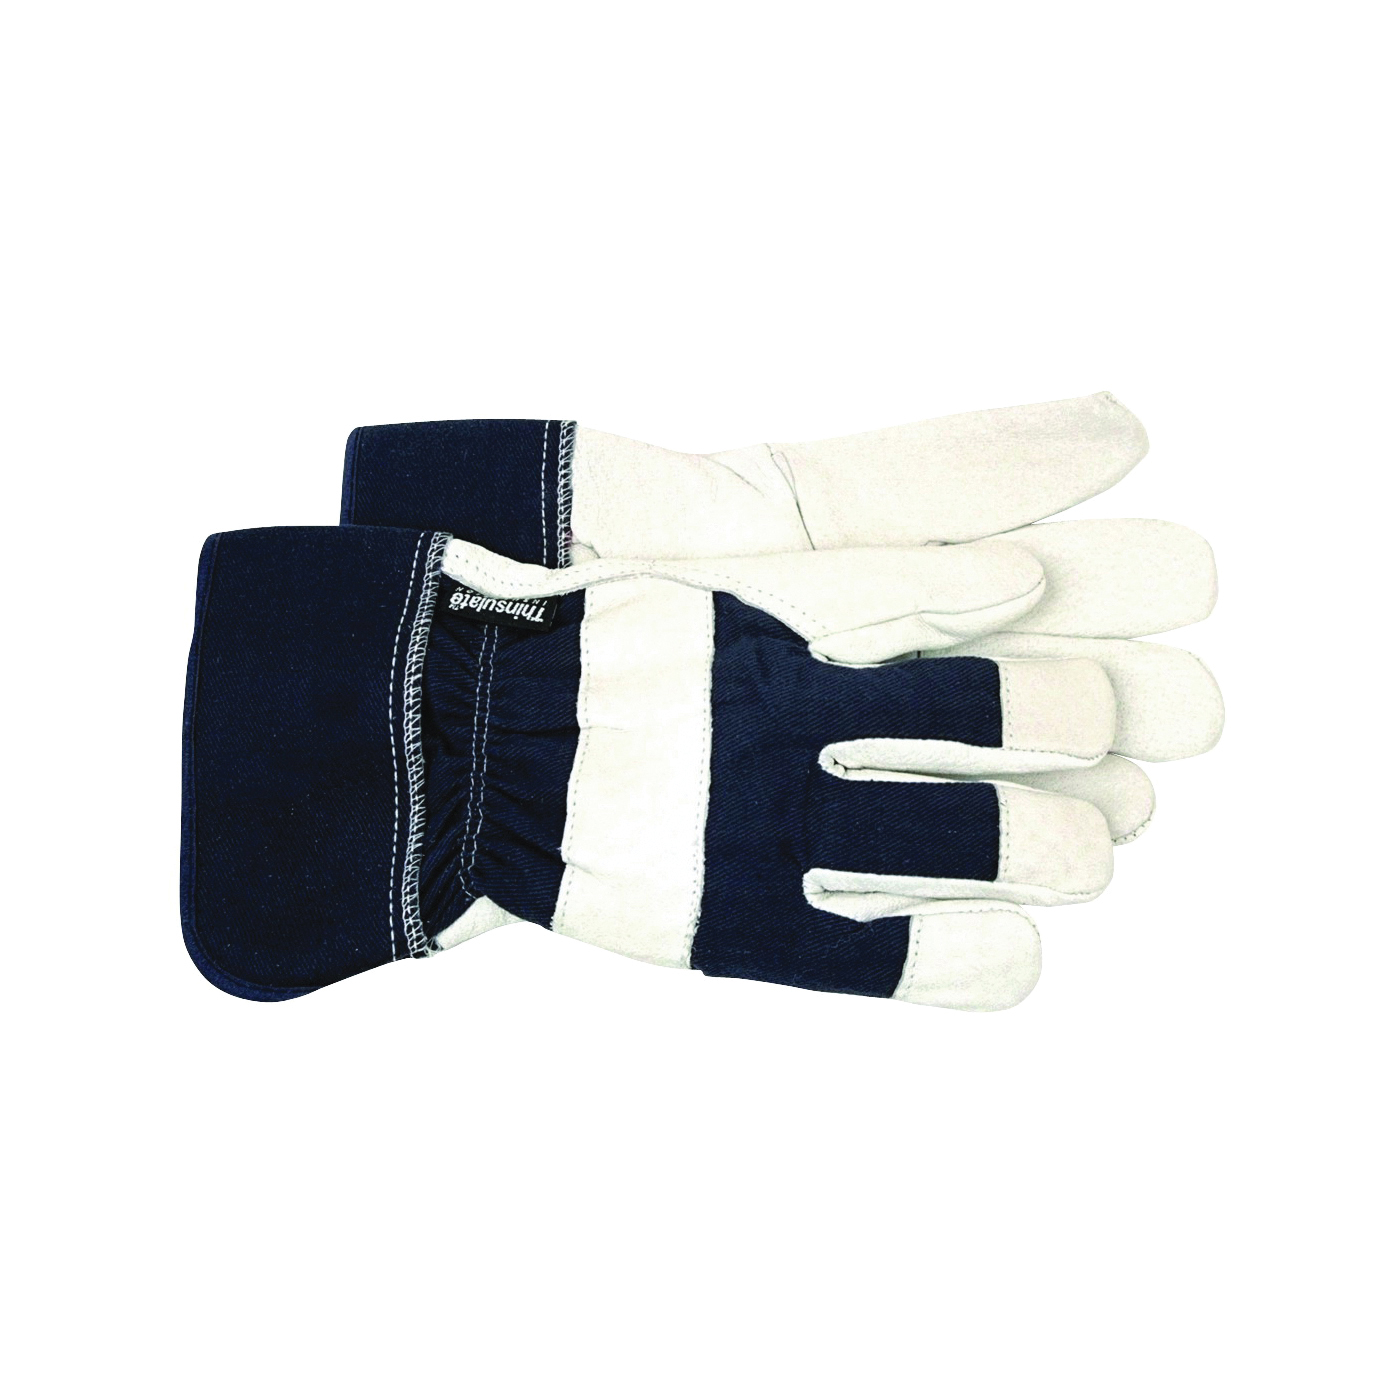 Picture of BOSS THERM 4196L Protective Gloves, Men's, L, Wing Thumb, Safety Cuff, Navy Blue